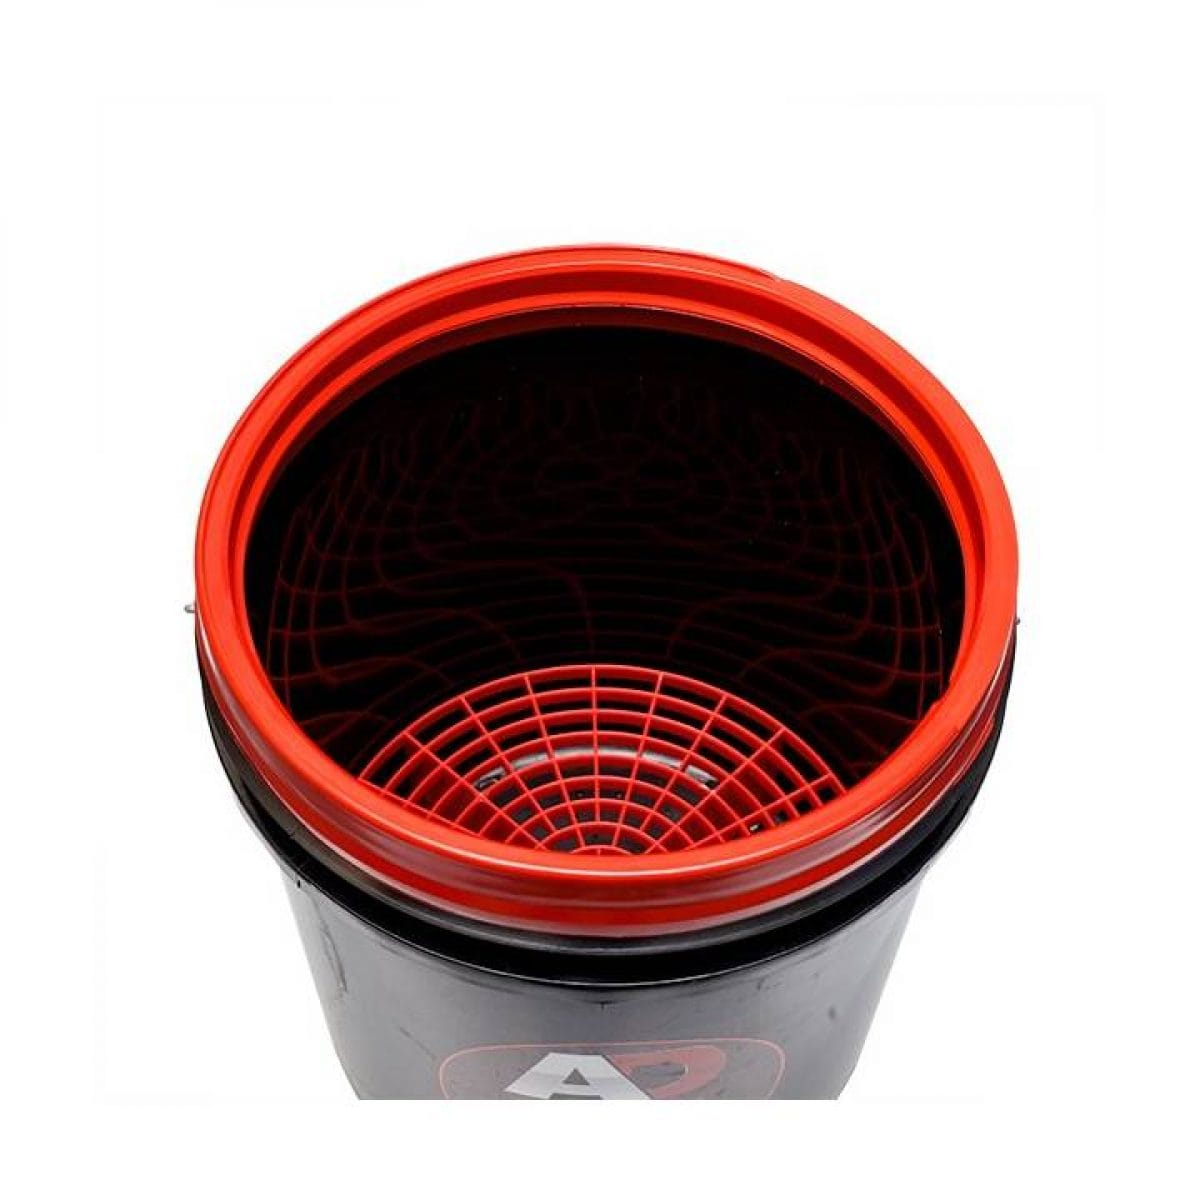 bucket inside with grate